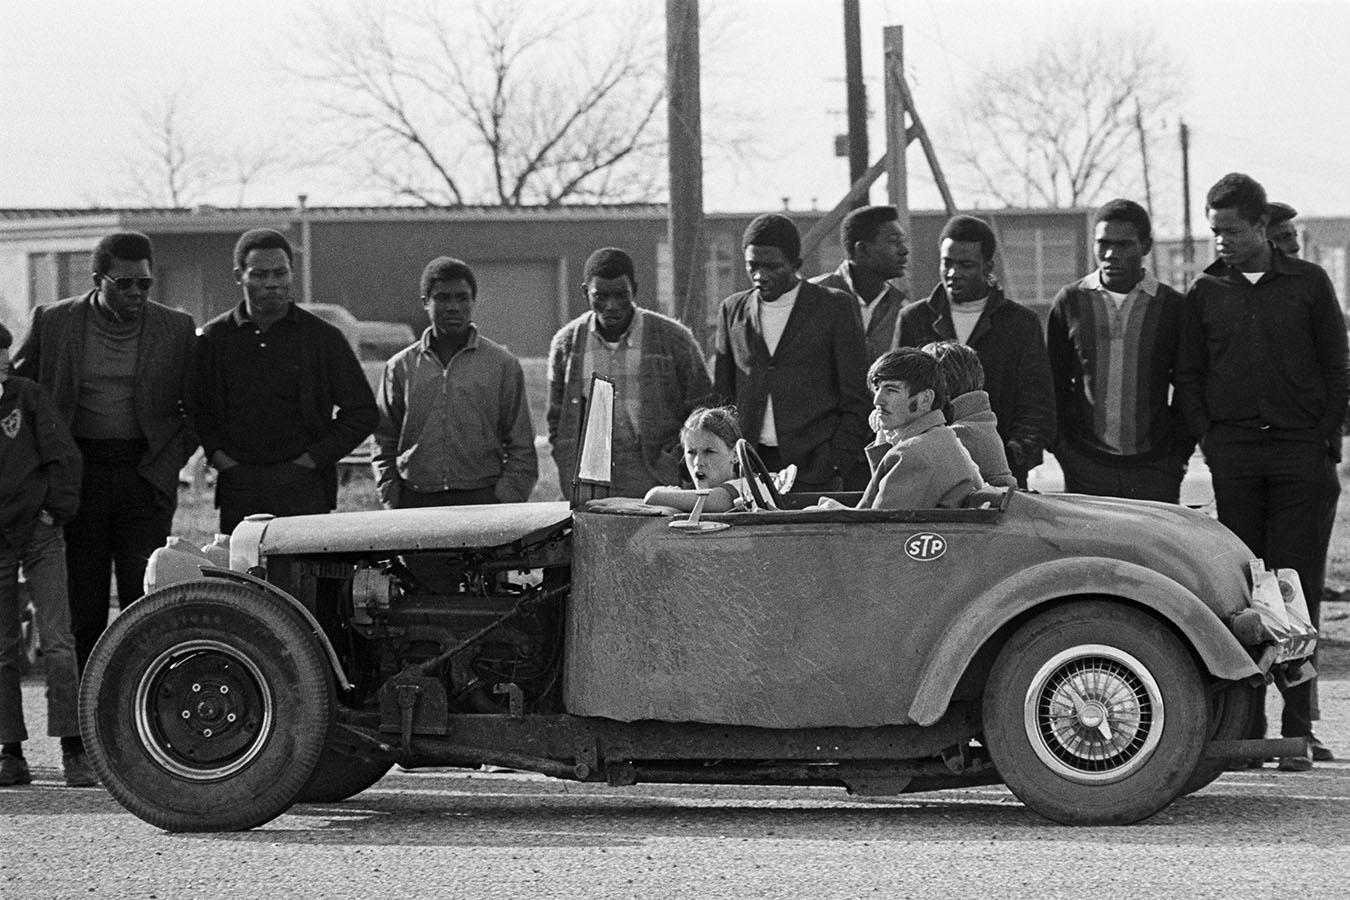 African-American spectators observing a drag race in Greenville, Mississippi, 1969. Photo by D. Gorton. White South Project Archive. e_wsp_0136